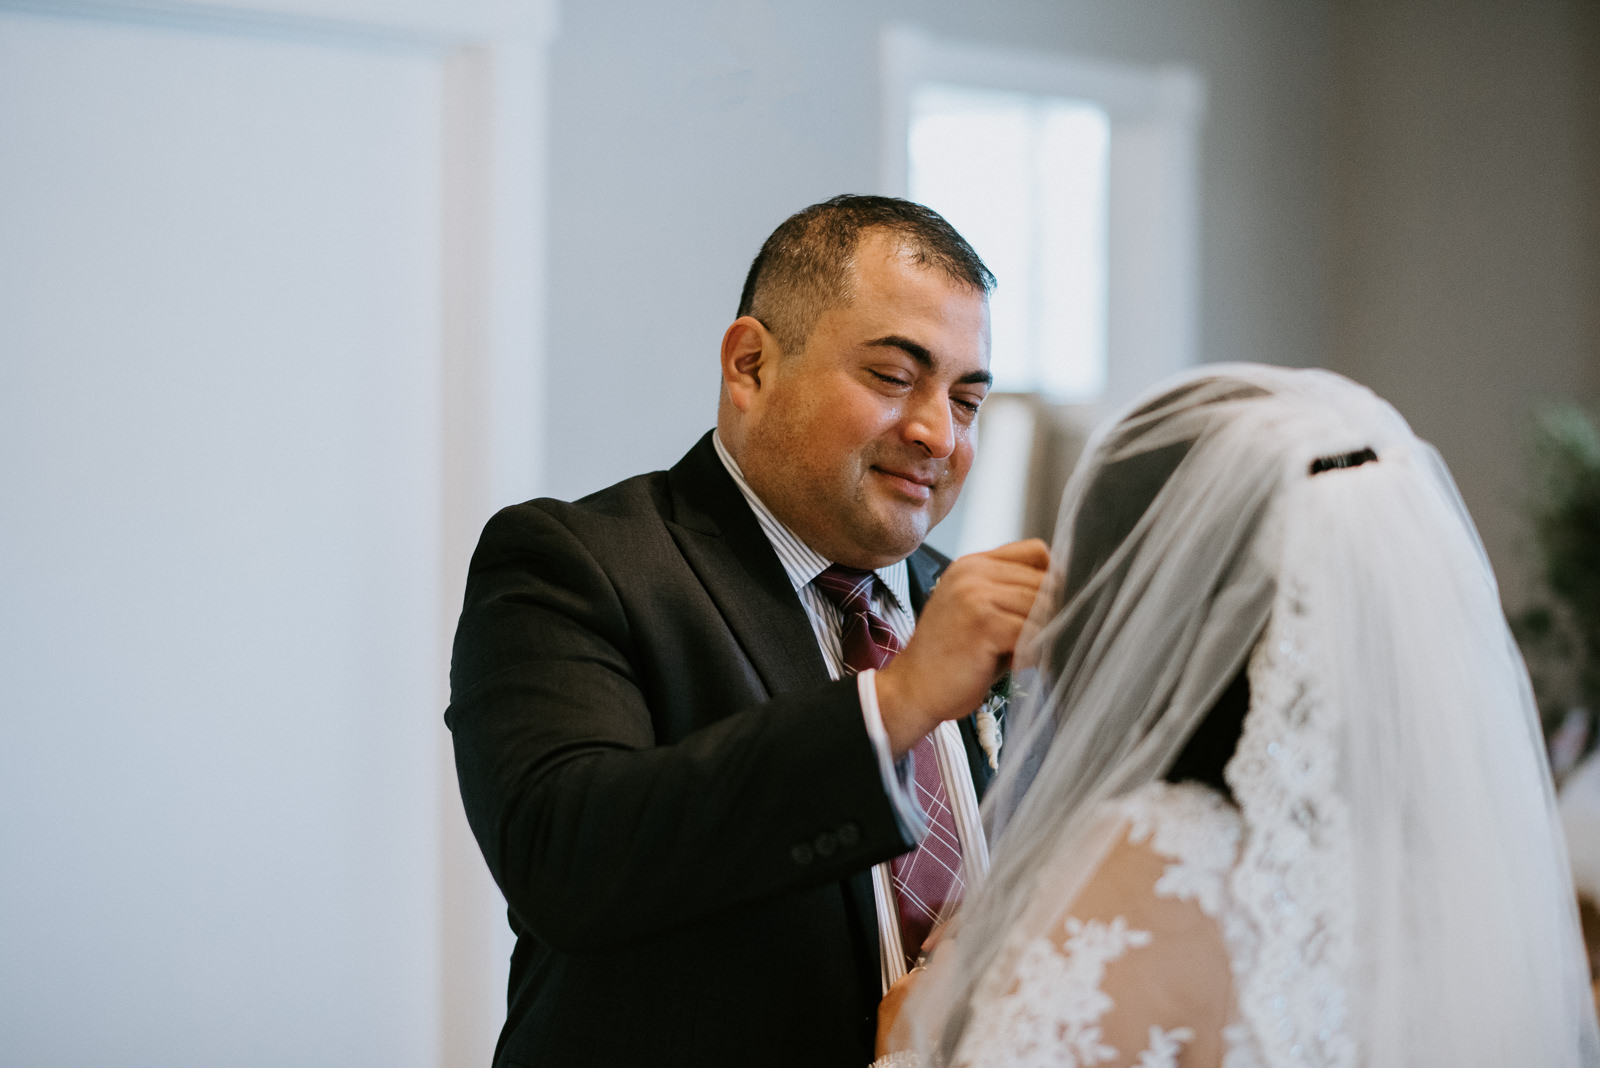 first look between father and bride